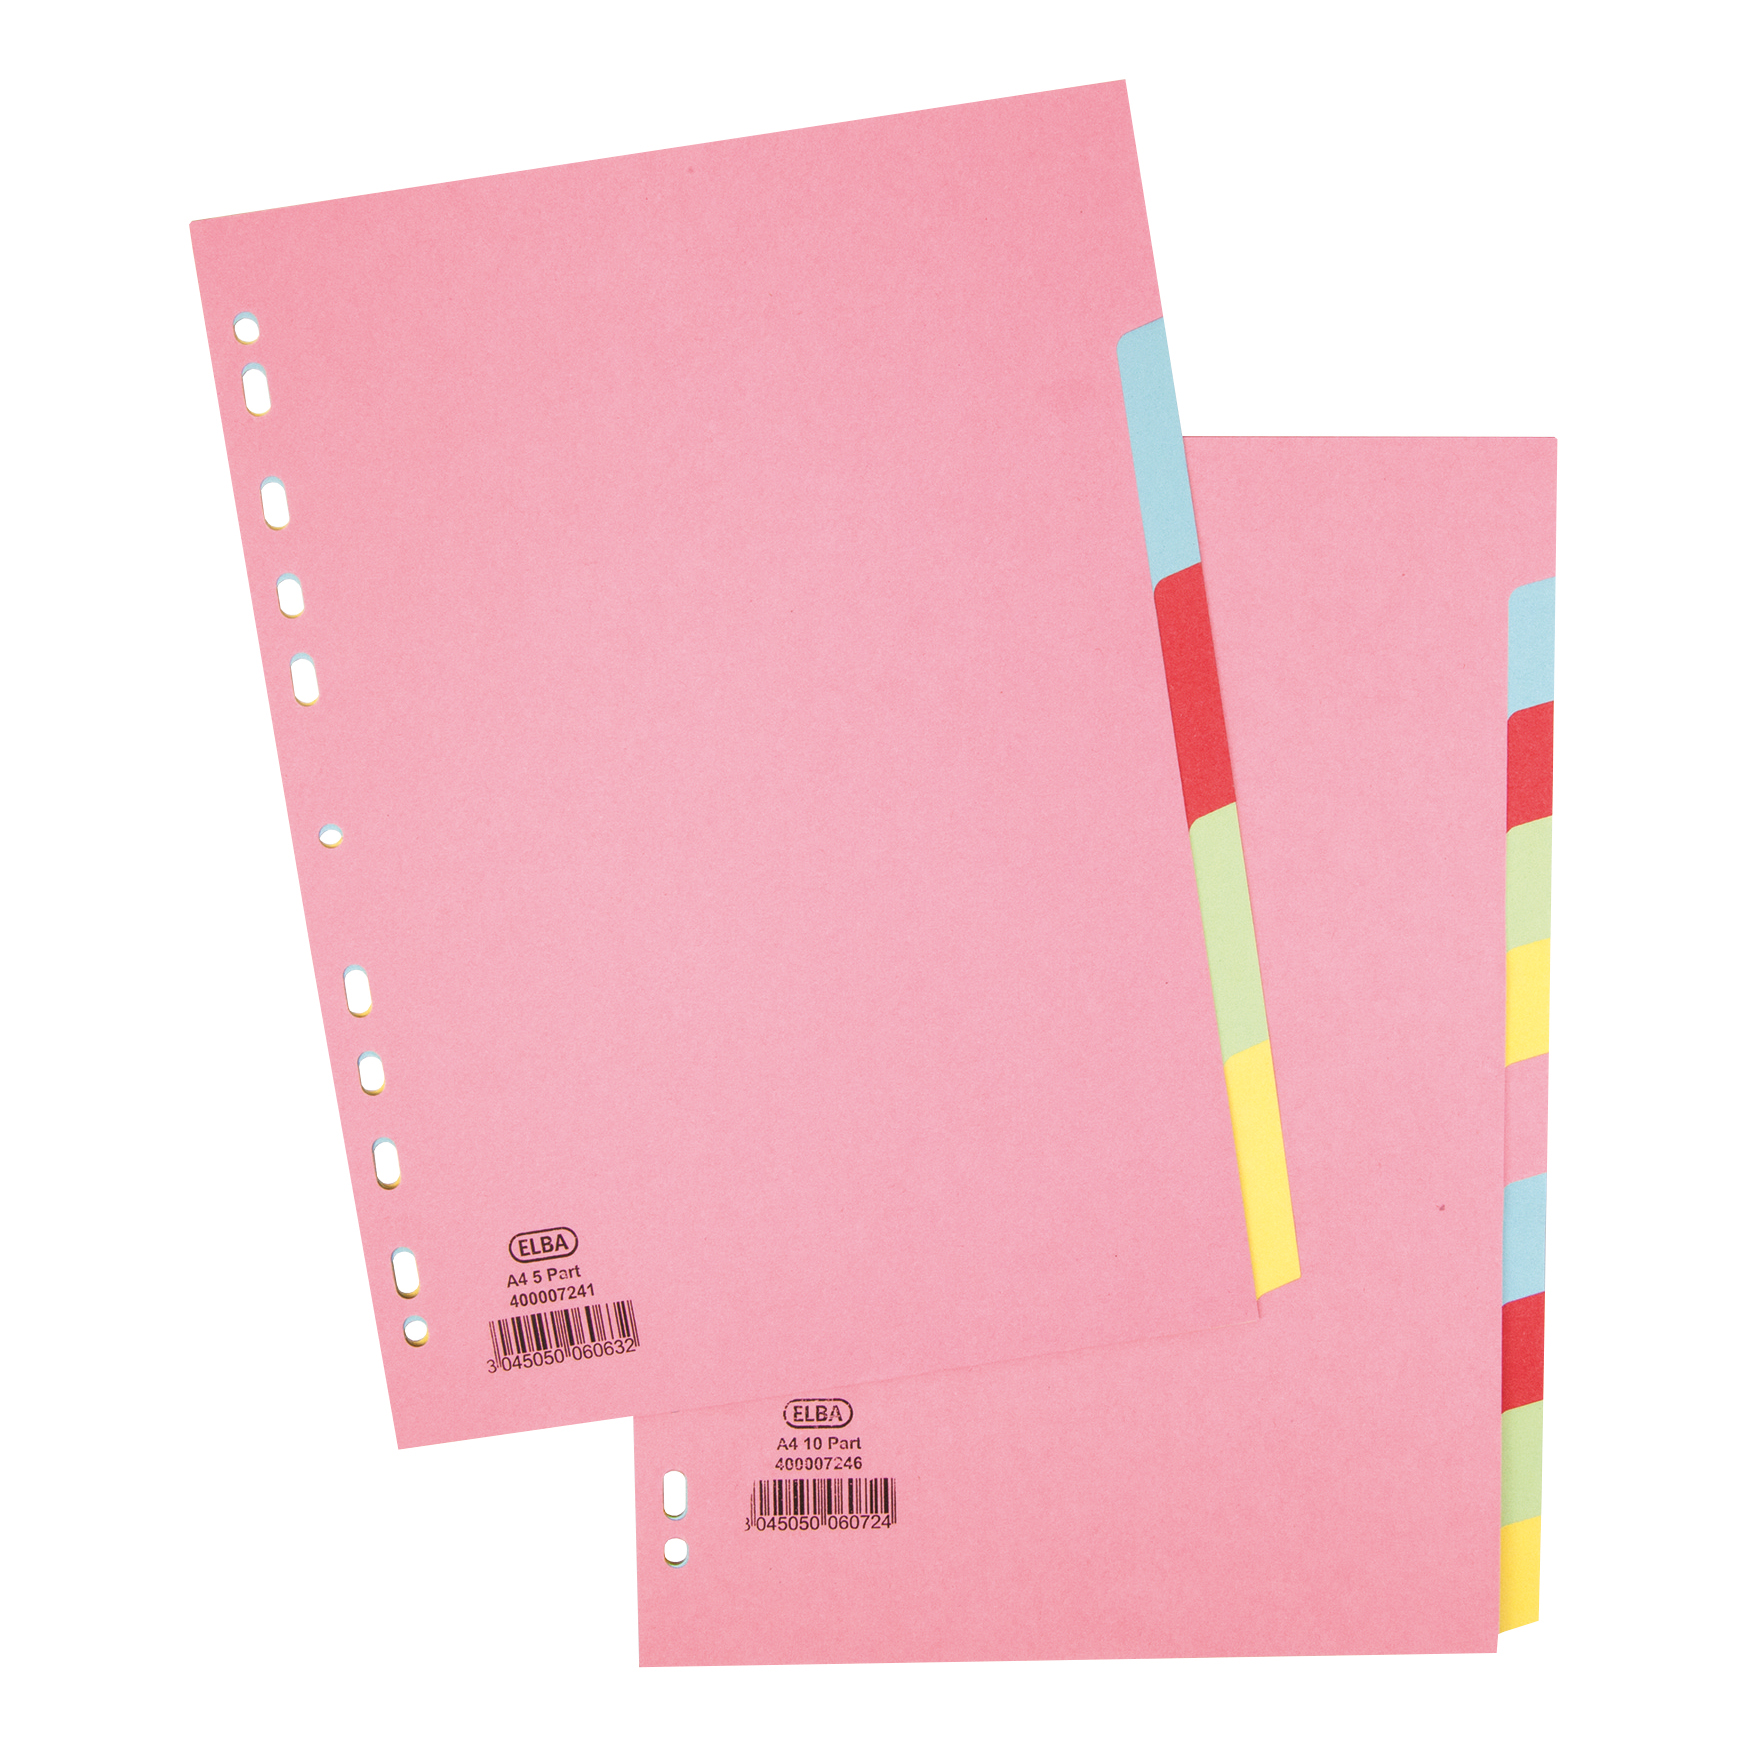 Image for Elba Subject Dividers 5-Part Card Multipunched Recyclable 160gsm A4 Assorted Ref 400007241